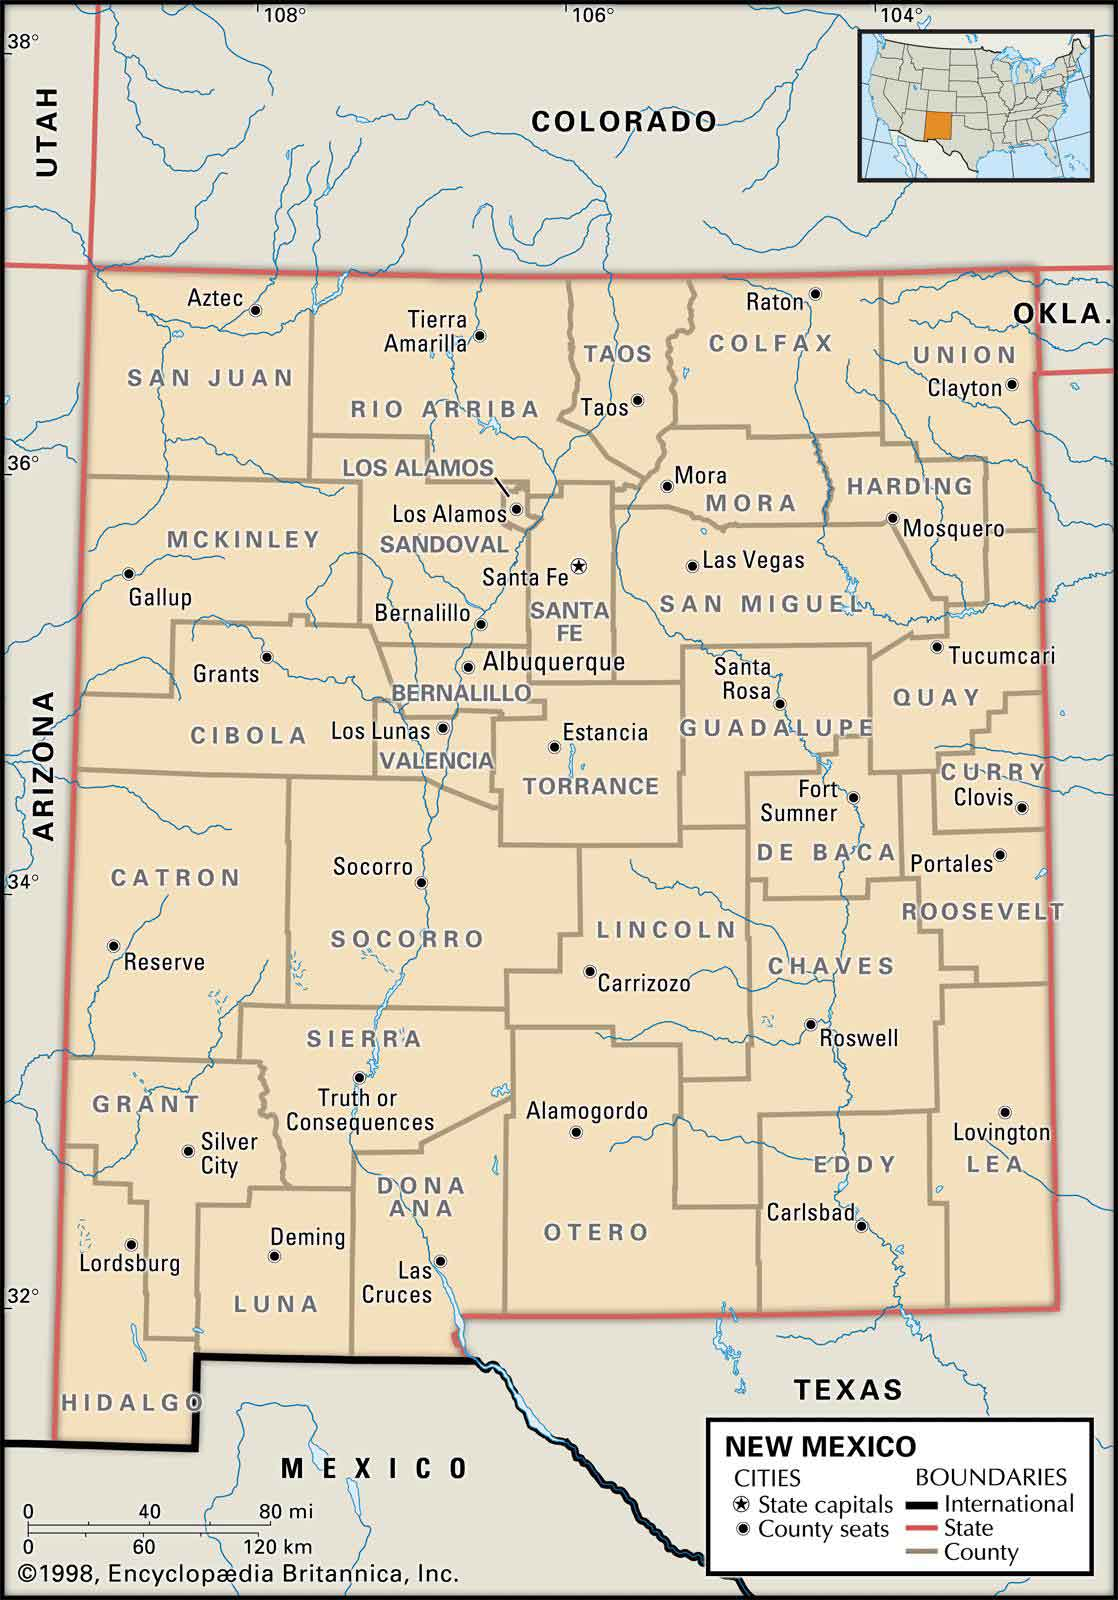 Maps Of Northern New Mexico : northern, mexico, Historical, City,, County, State, Mexico